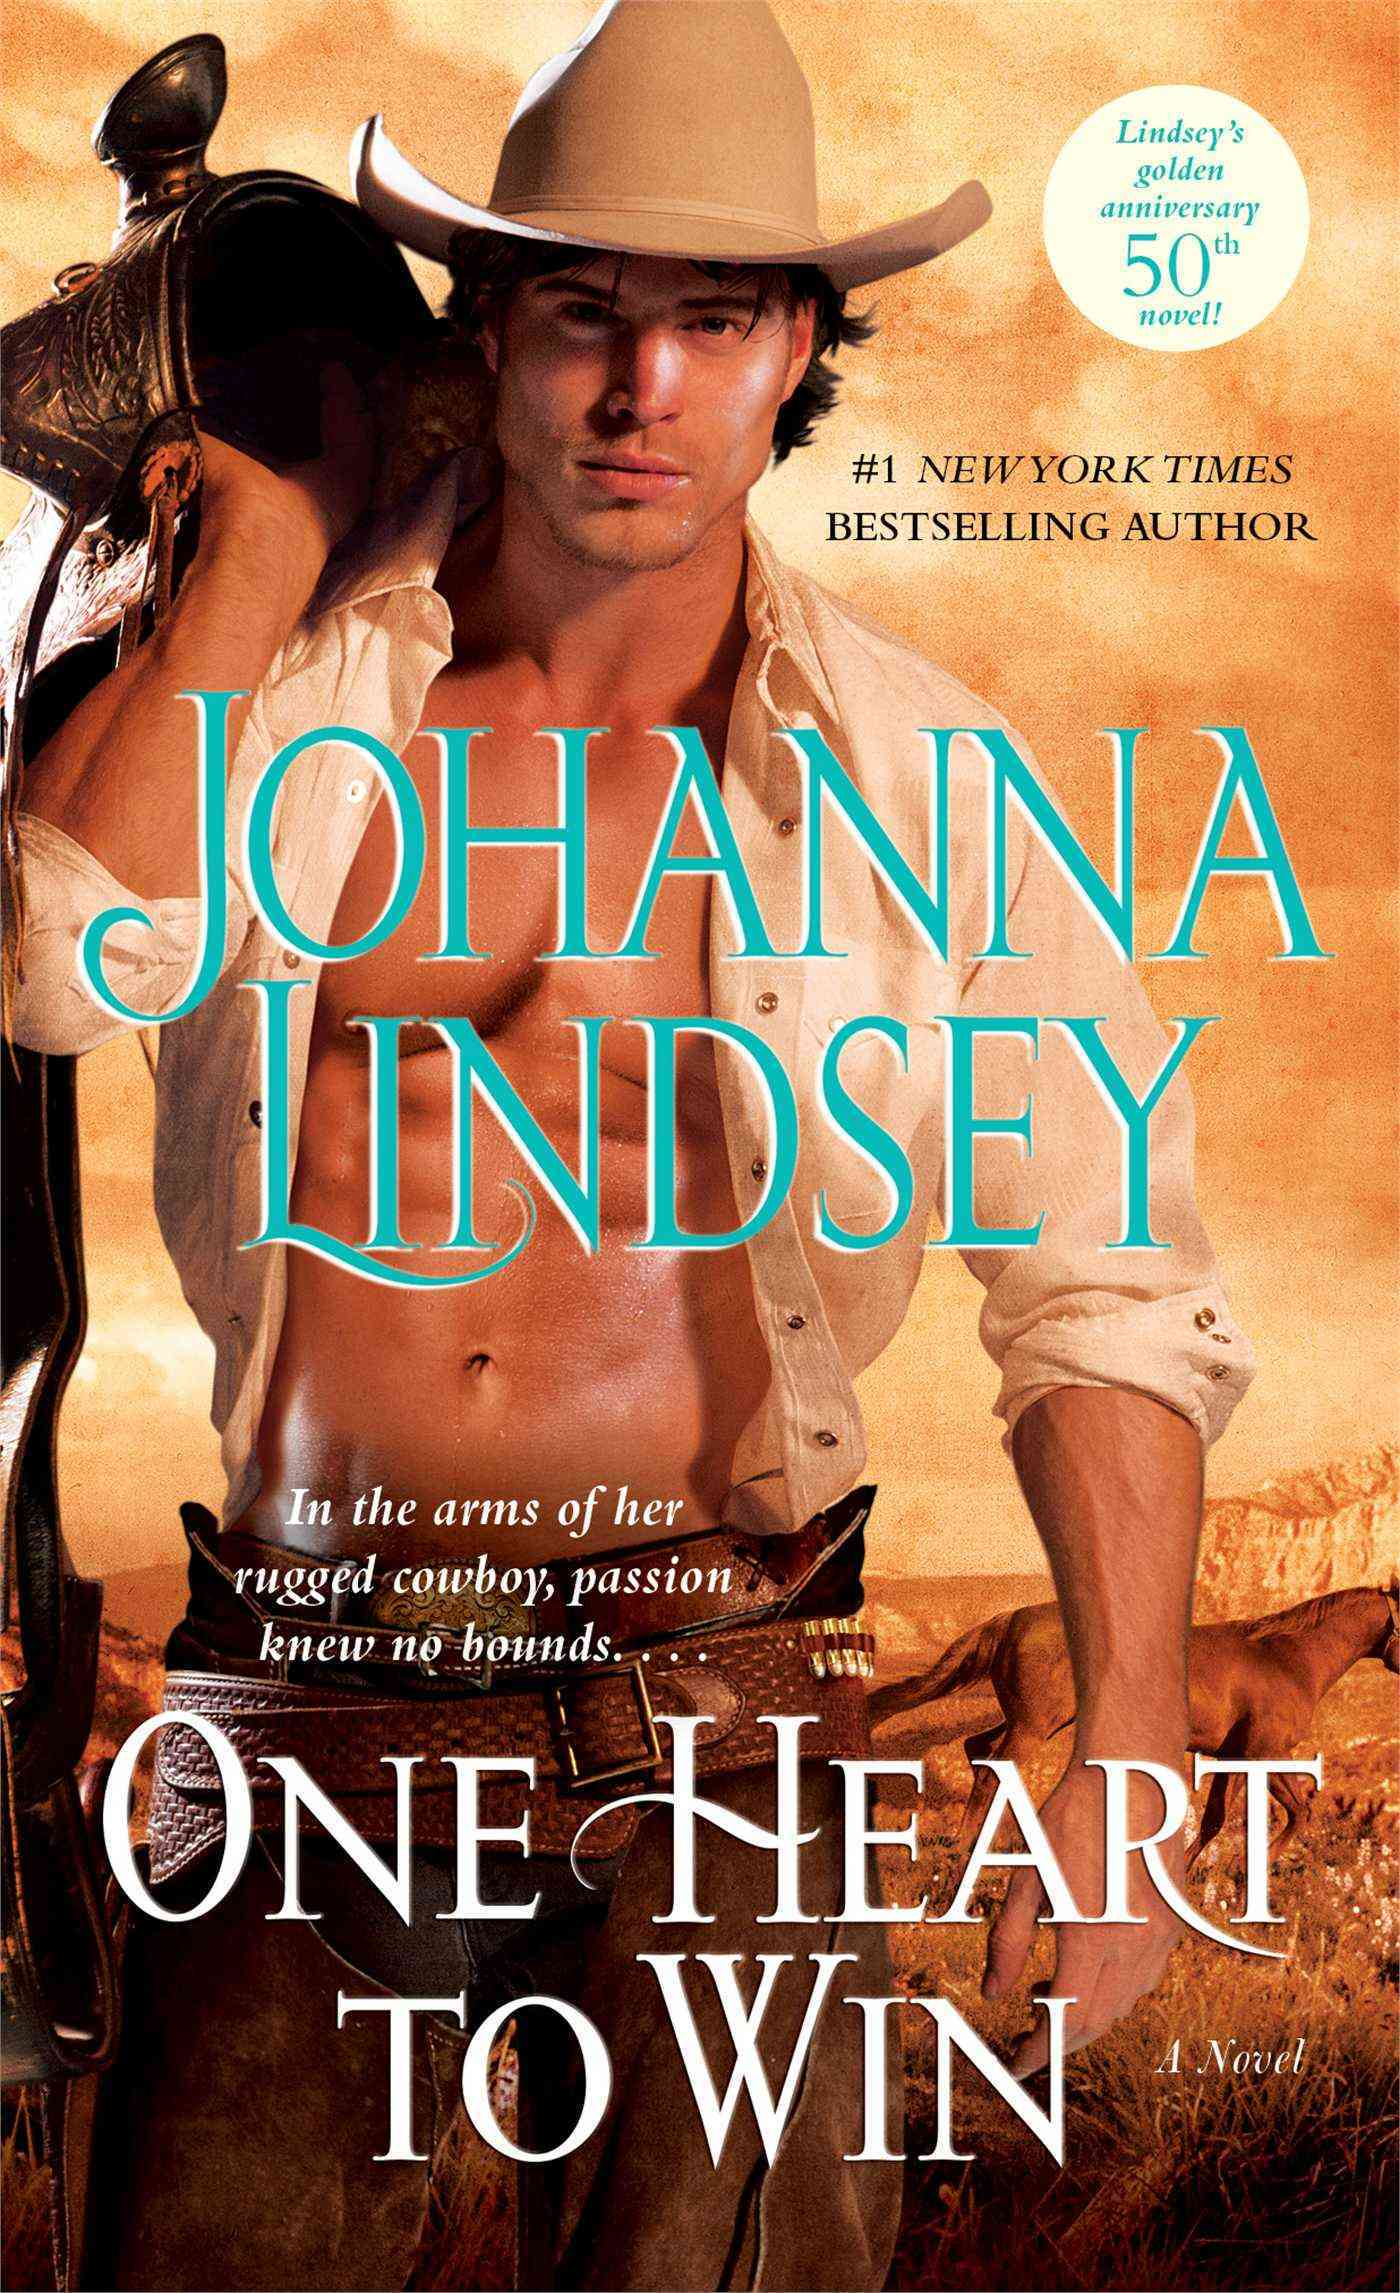 One Heart to Win (Paperback)